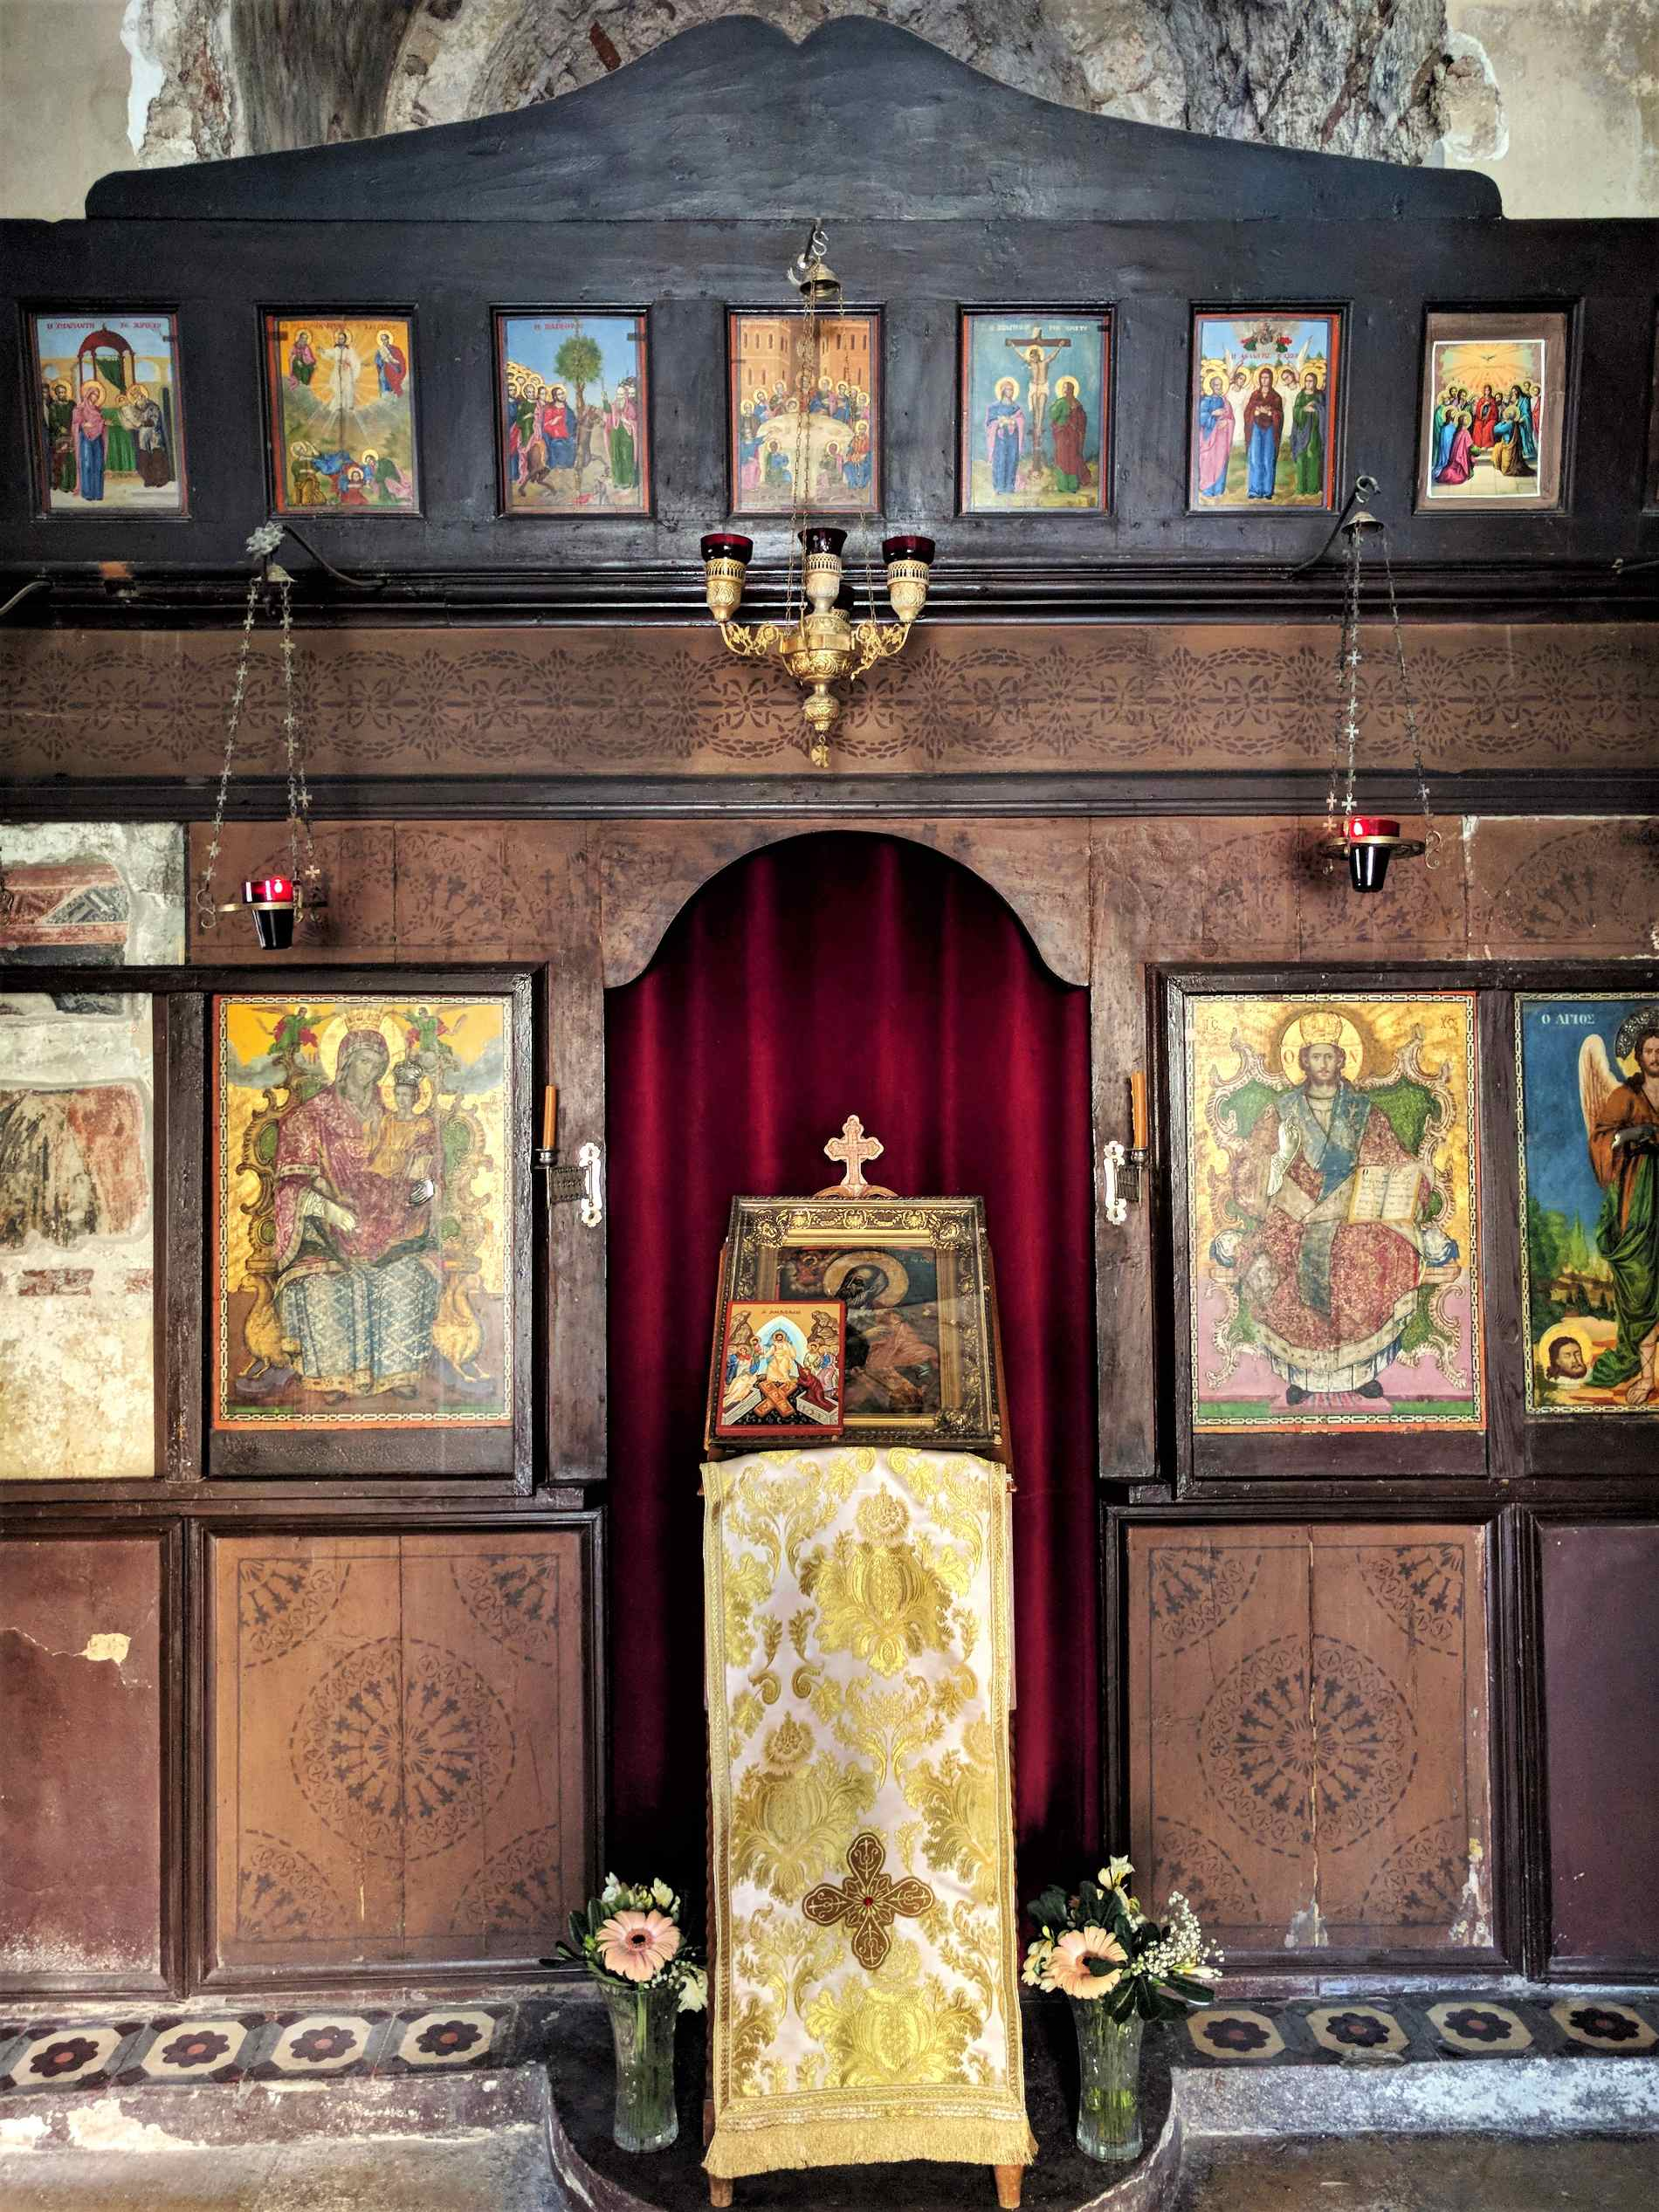 Inside the orthodox church of Ayios Ioannis Theologos.